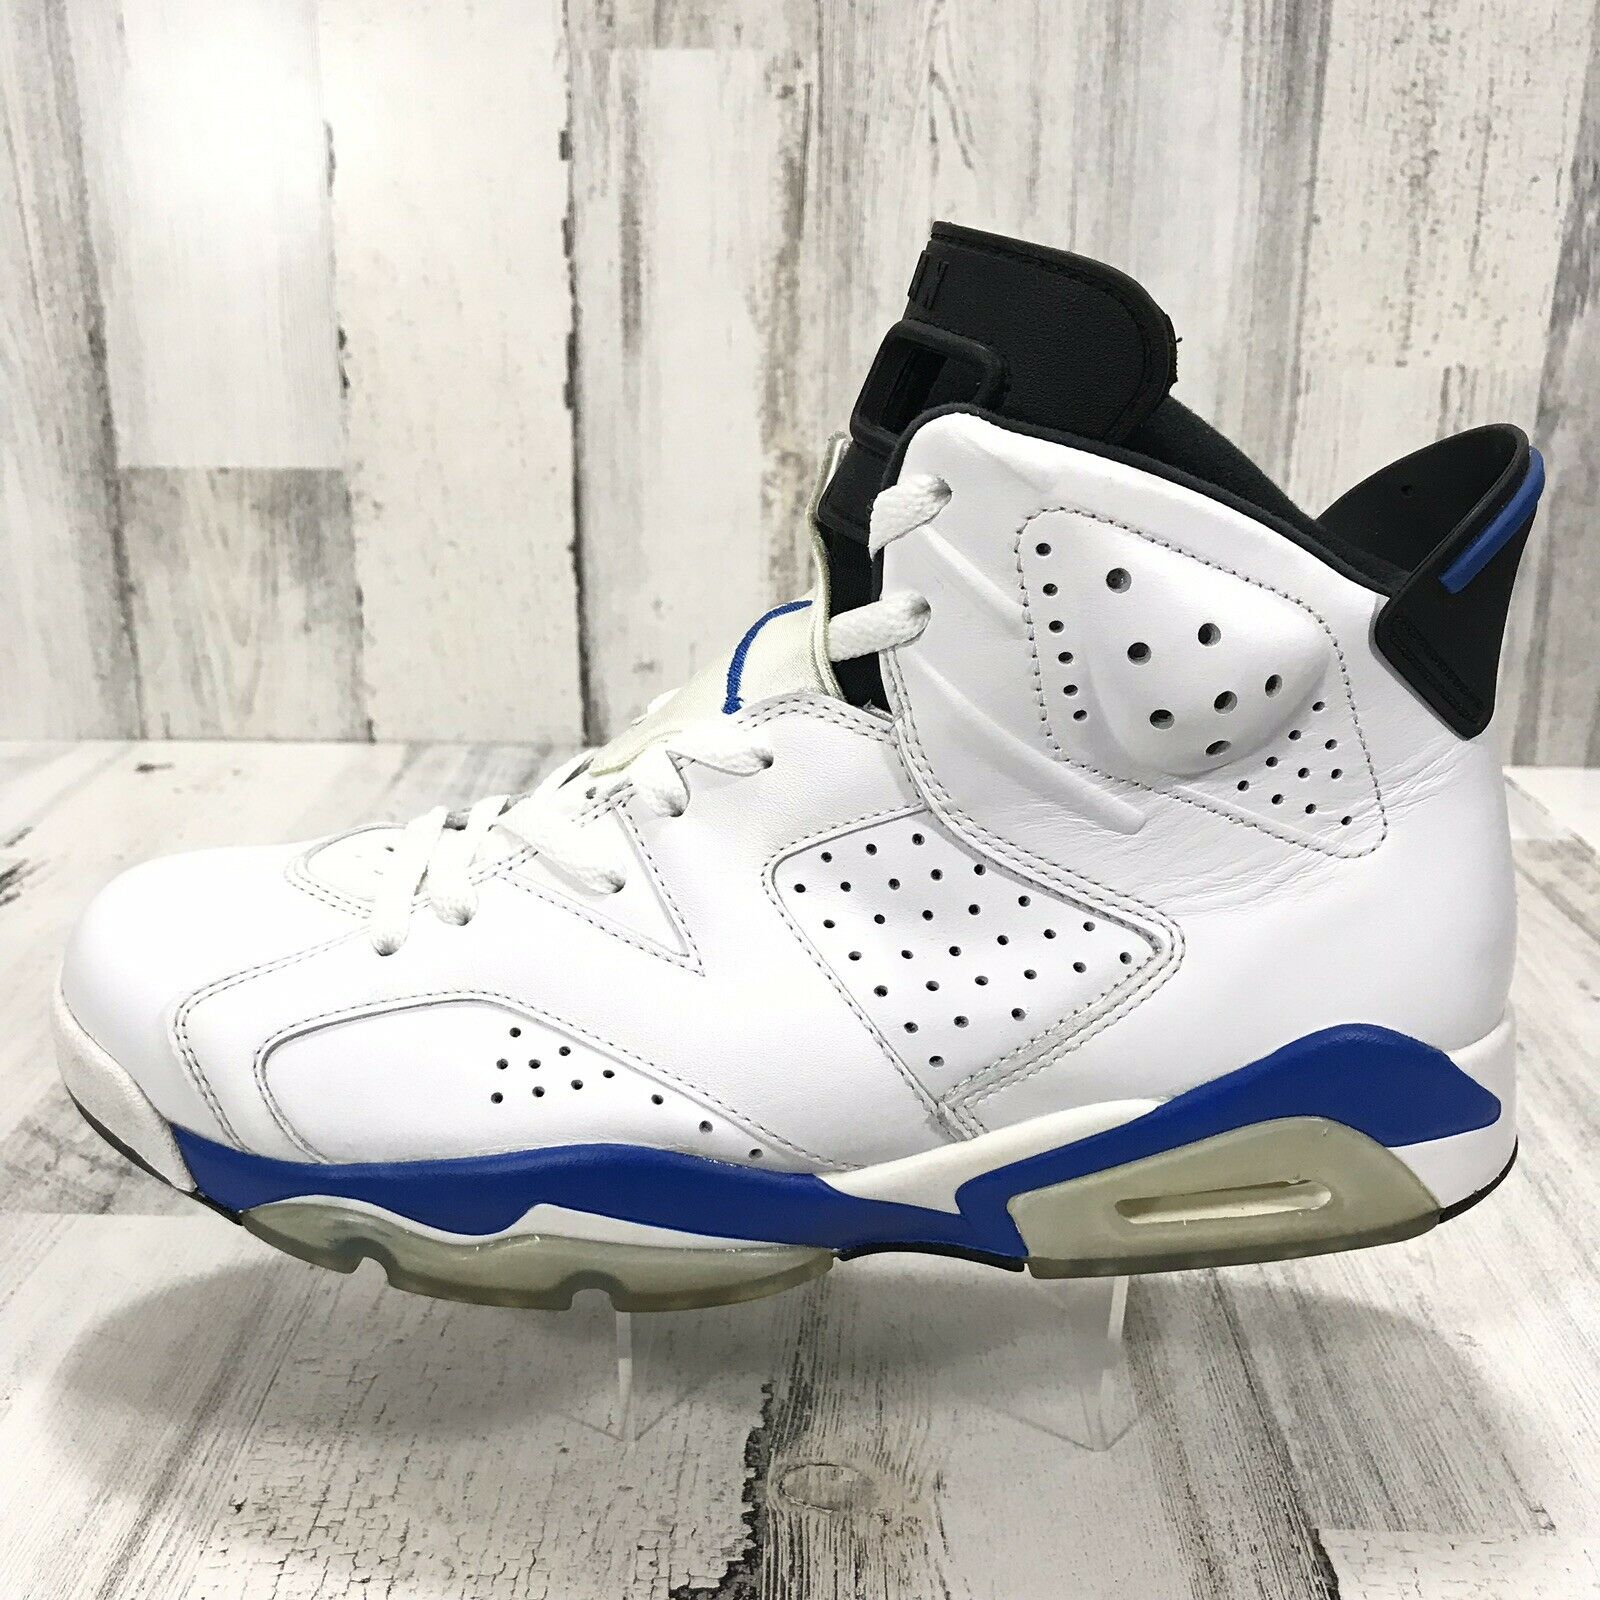 Nike Air Jordan 6 Retro Sport bluee 384664-107 Size 9.5